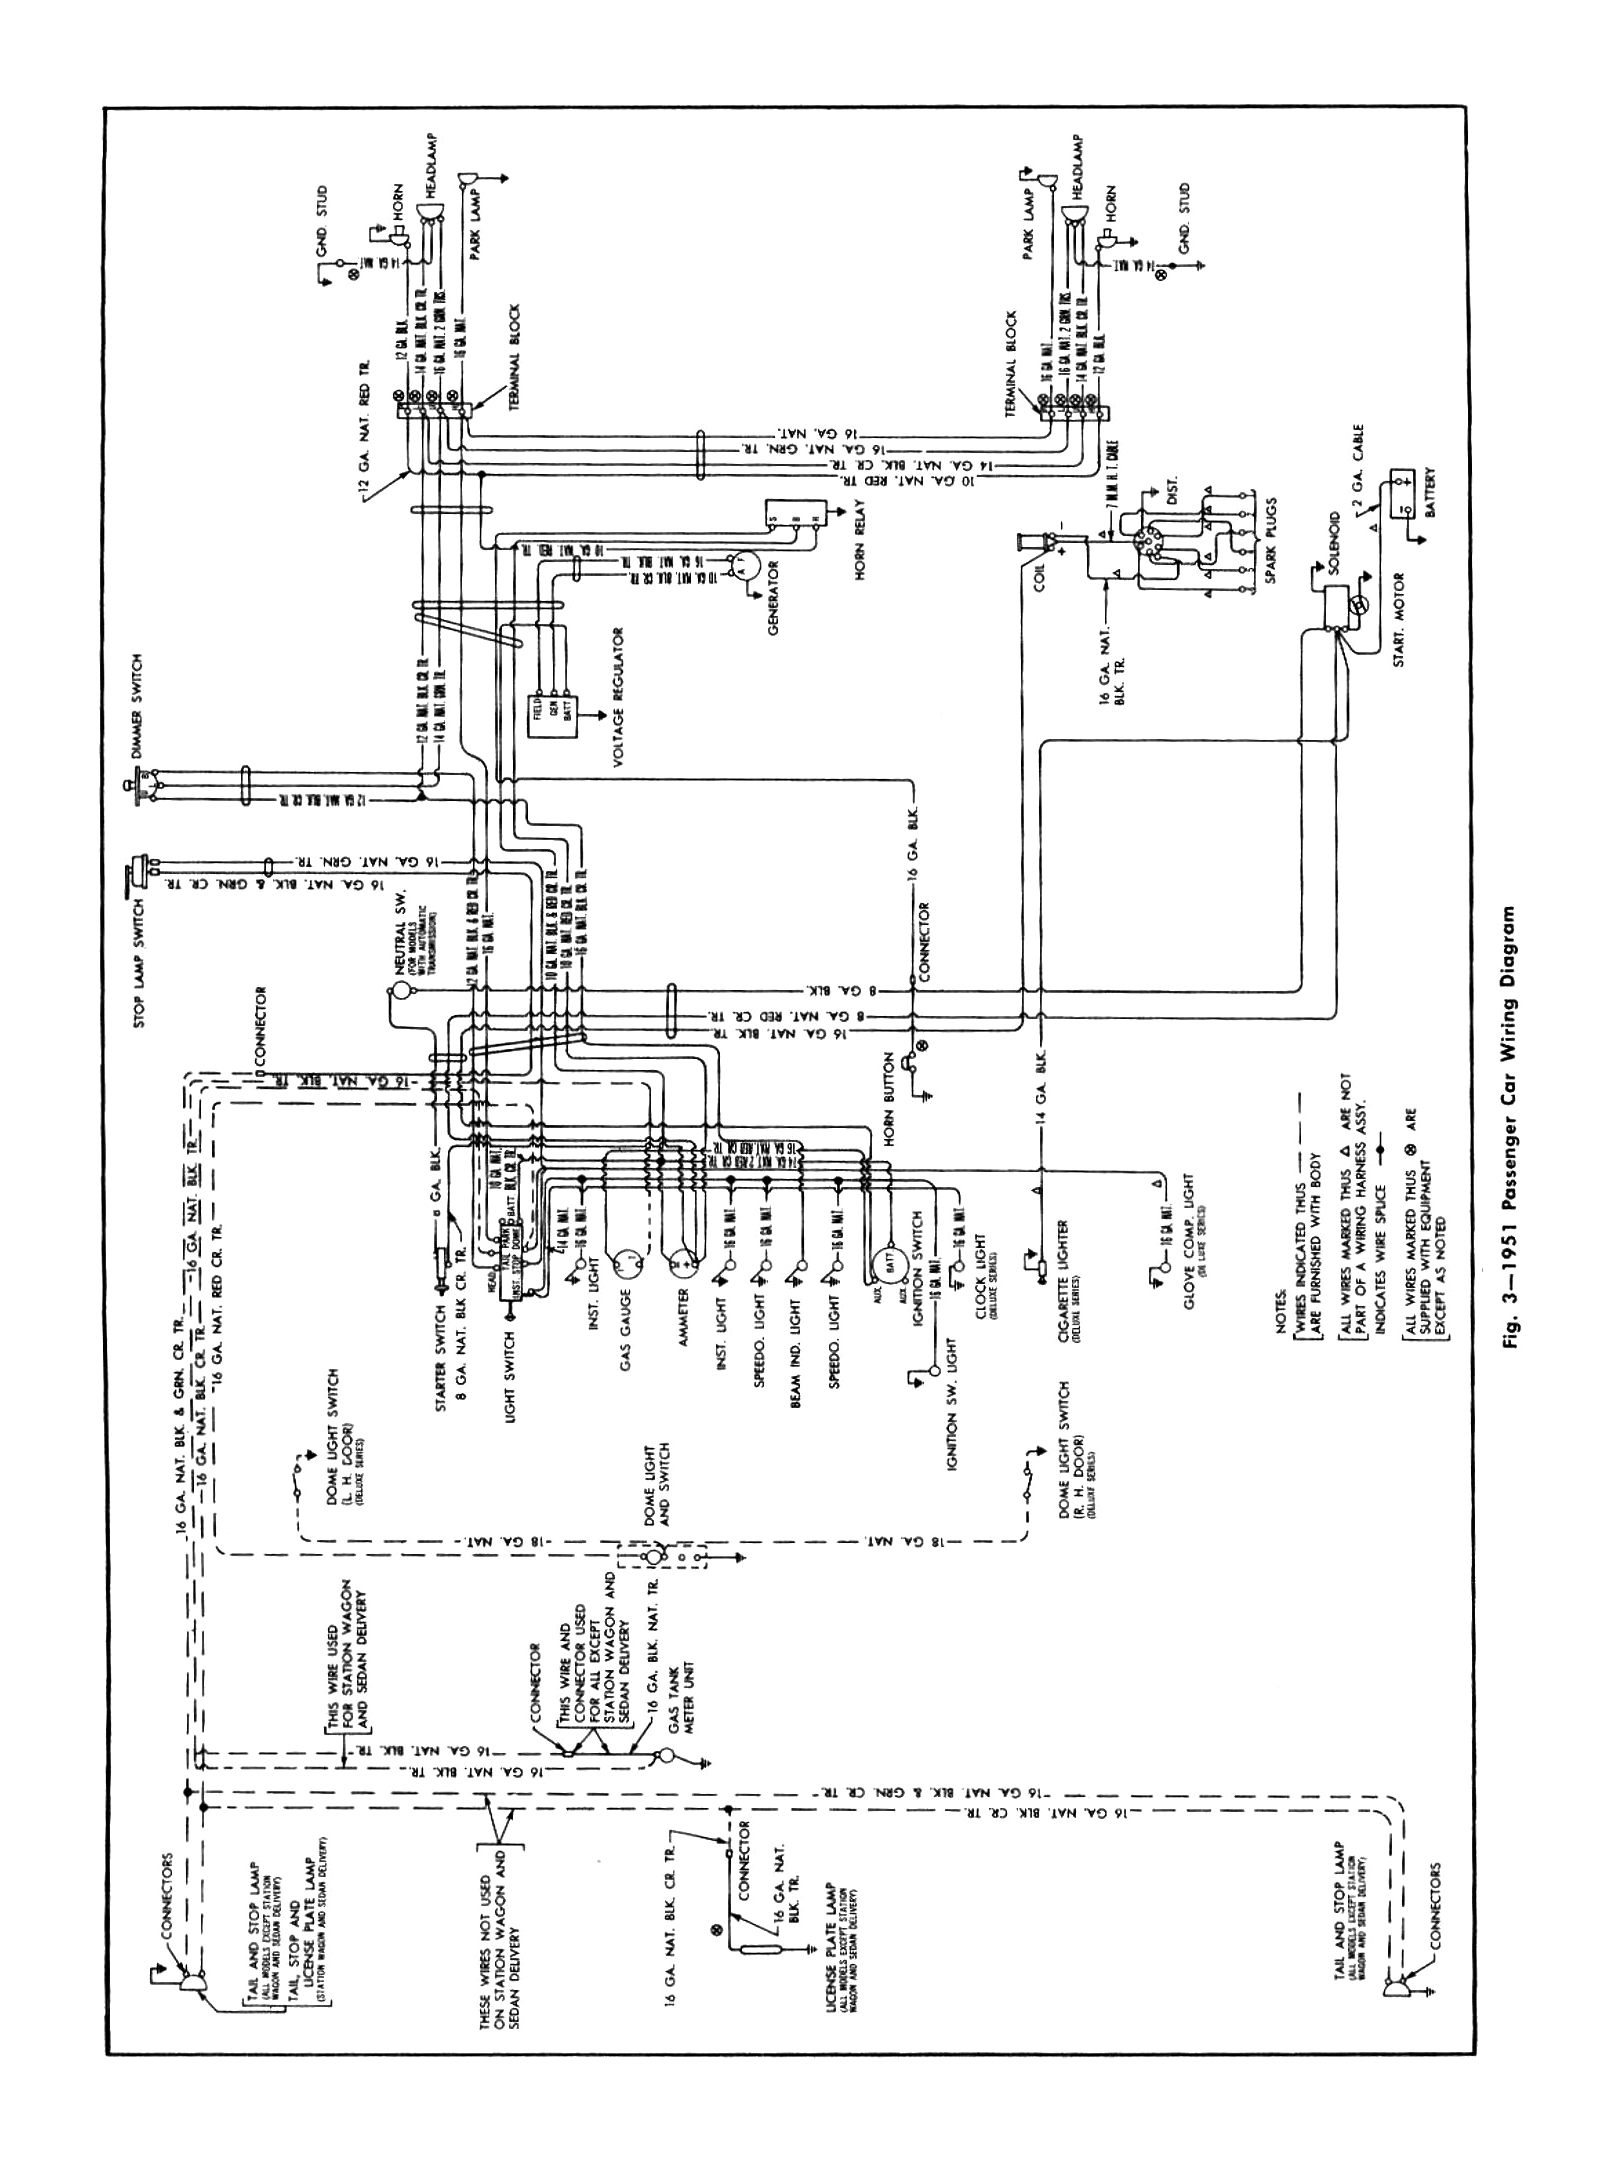 51car wiring loom diagram 1 2wire loom \u2022 wiring diagrams j squared co Peterbilt 387 Fuse Panel Diagram at crackthecode.co